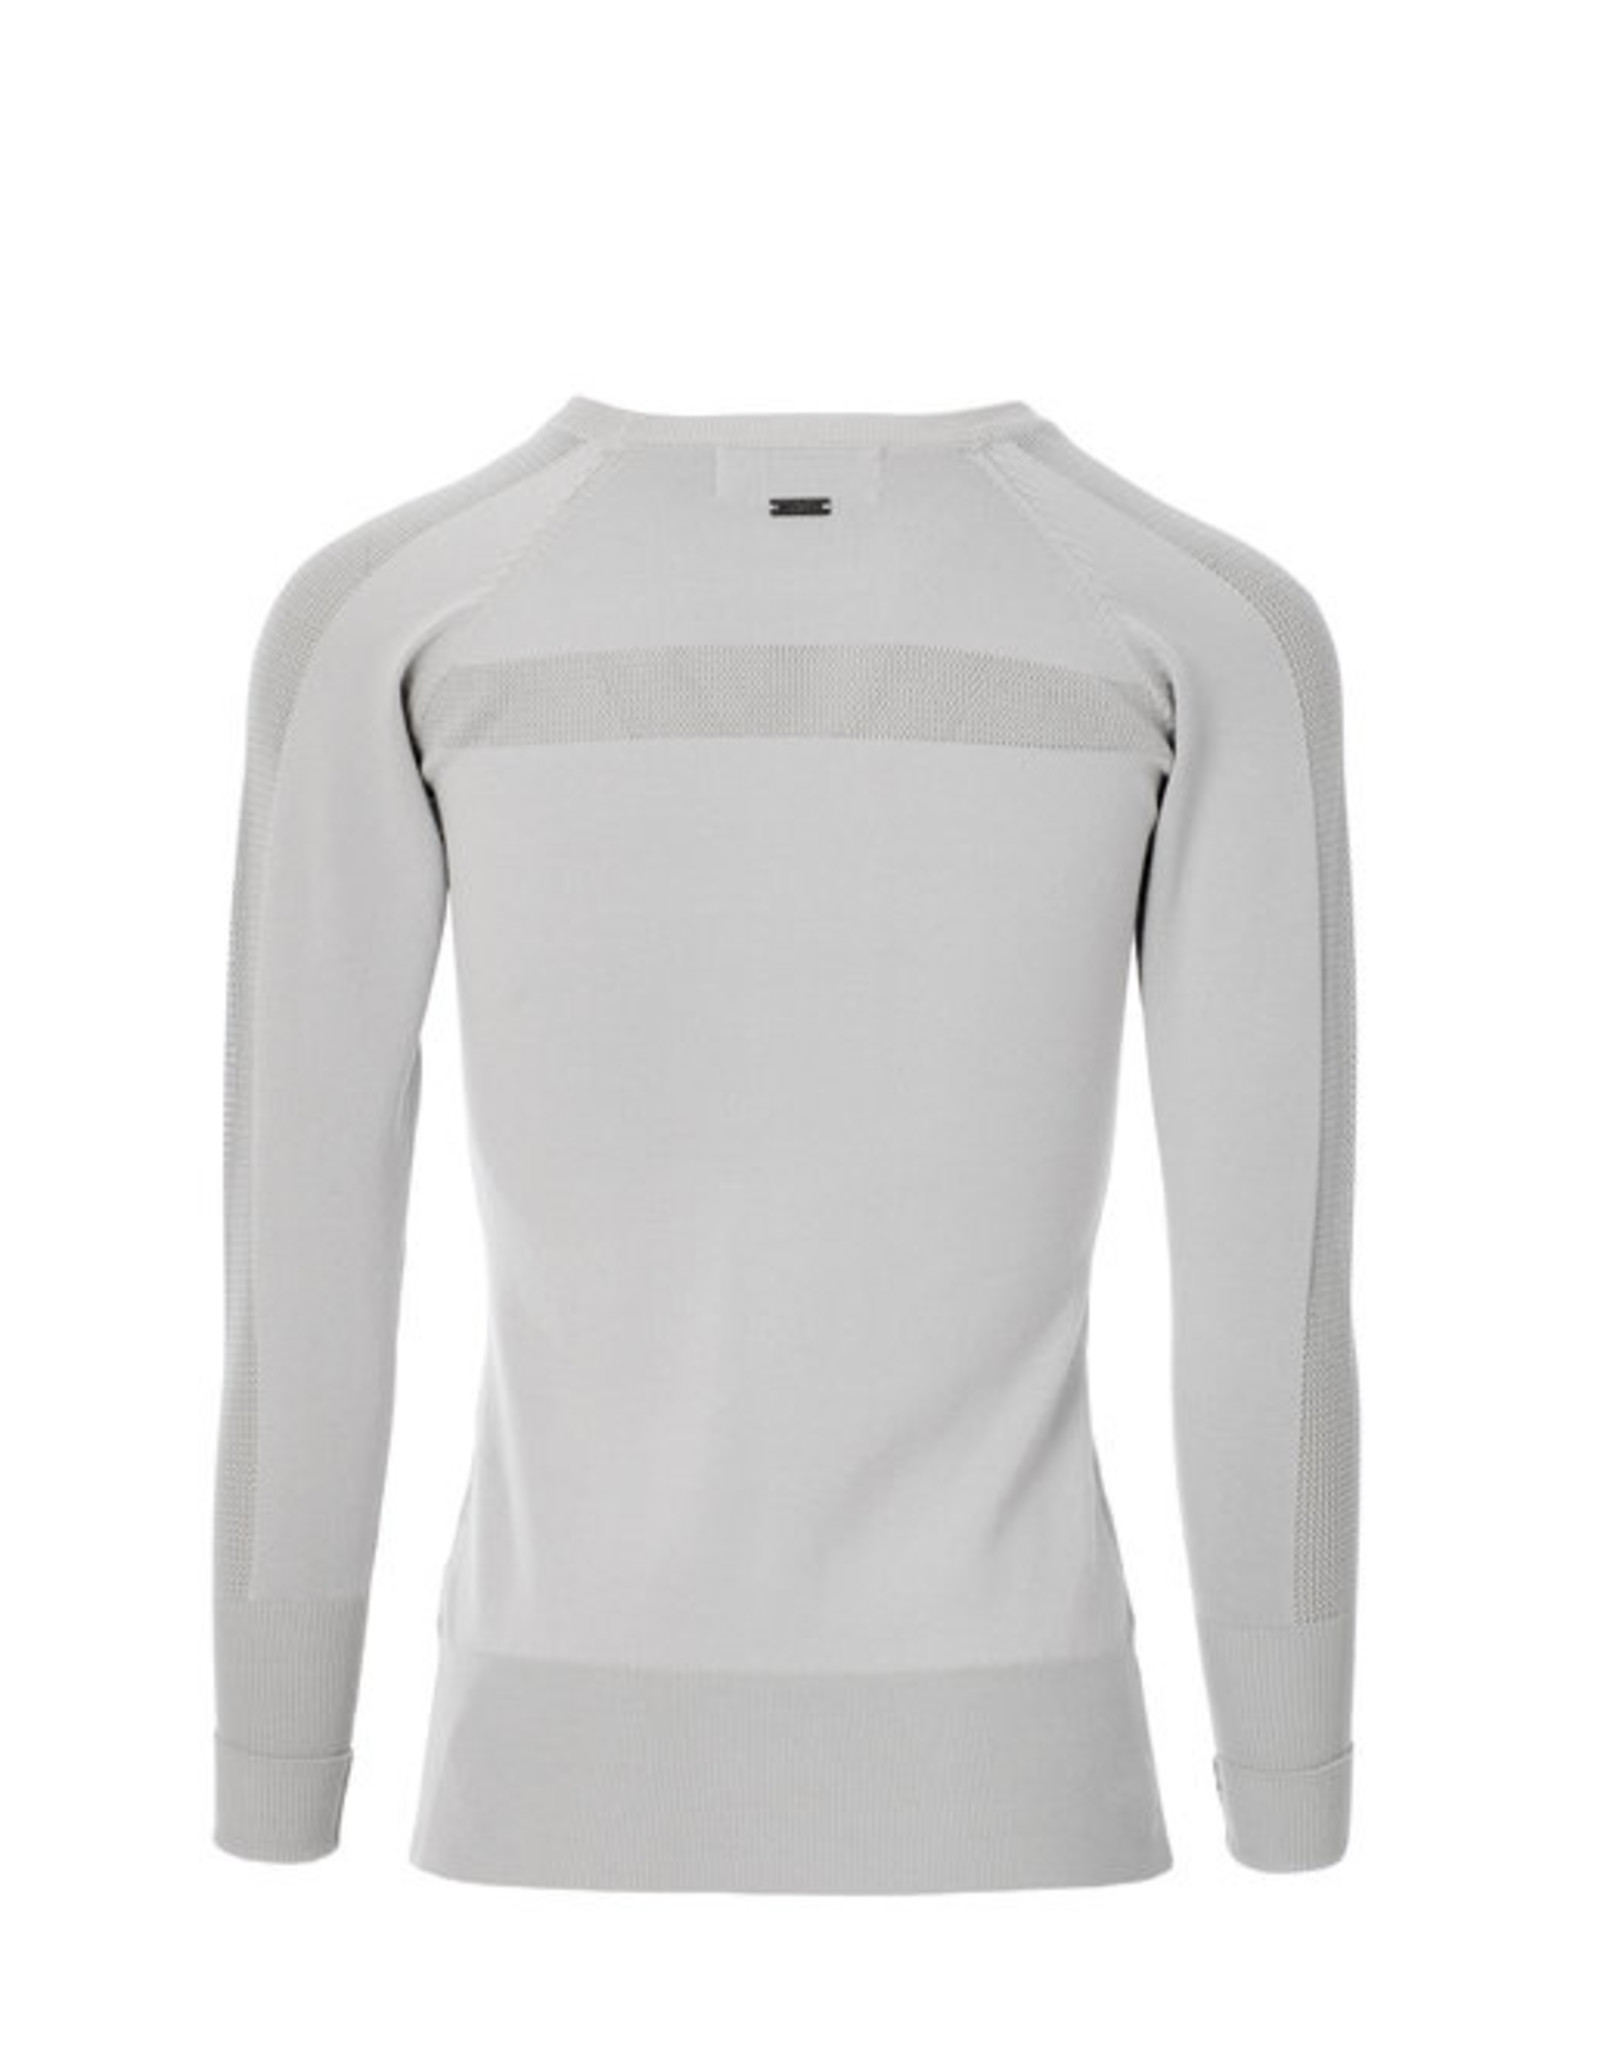 ALESSANDRO ALBANESE ARIA PERFORATED SWEATER